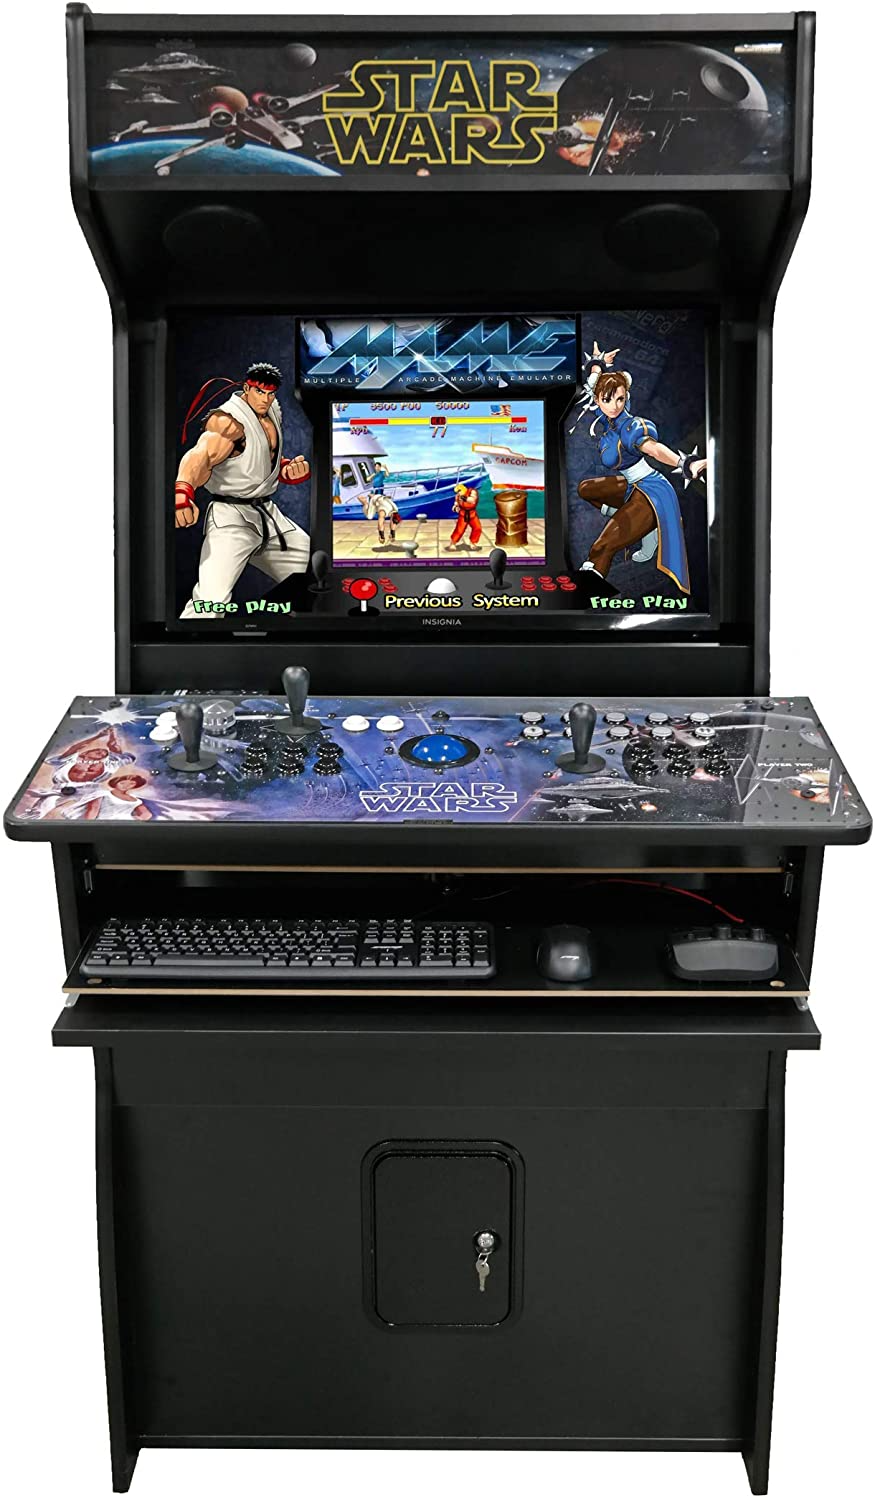 Amazonsmile N2fun Star Wars Mame Hyperspin Full Size Commercial Grade Arcade Game 3 Pro Trackball 32 Smart Tv 12k Games Ready To Play 3 Yr Warrant